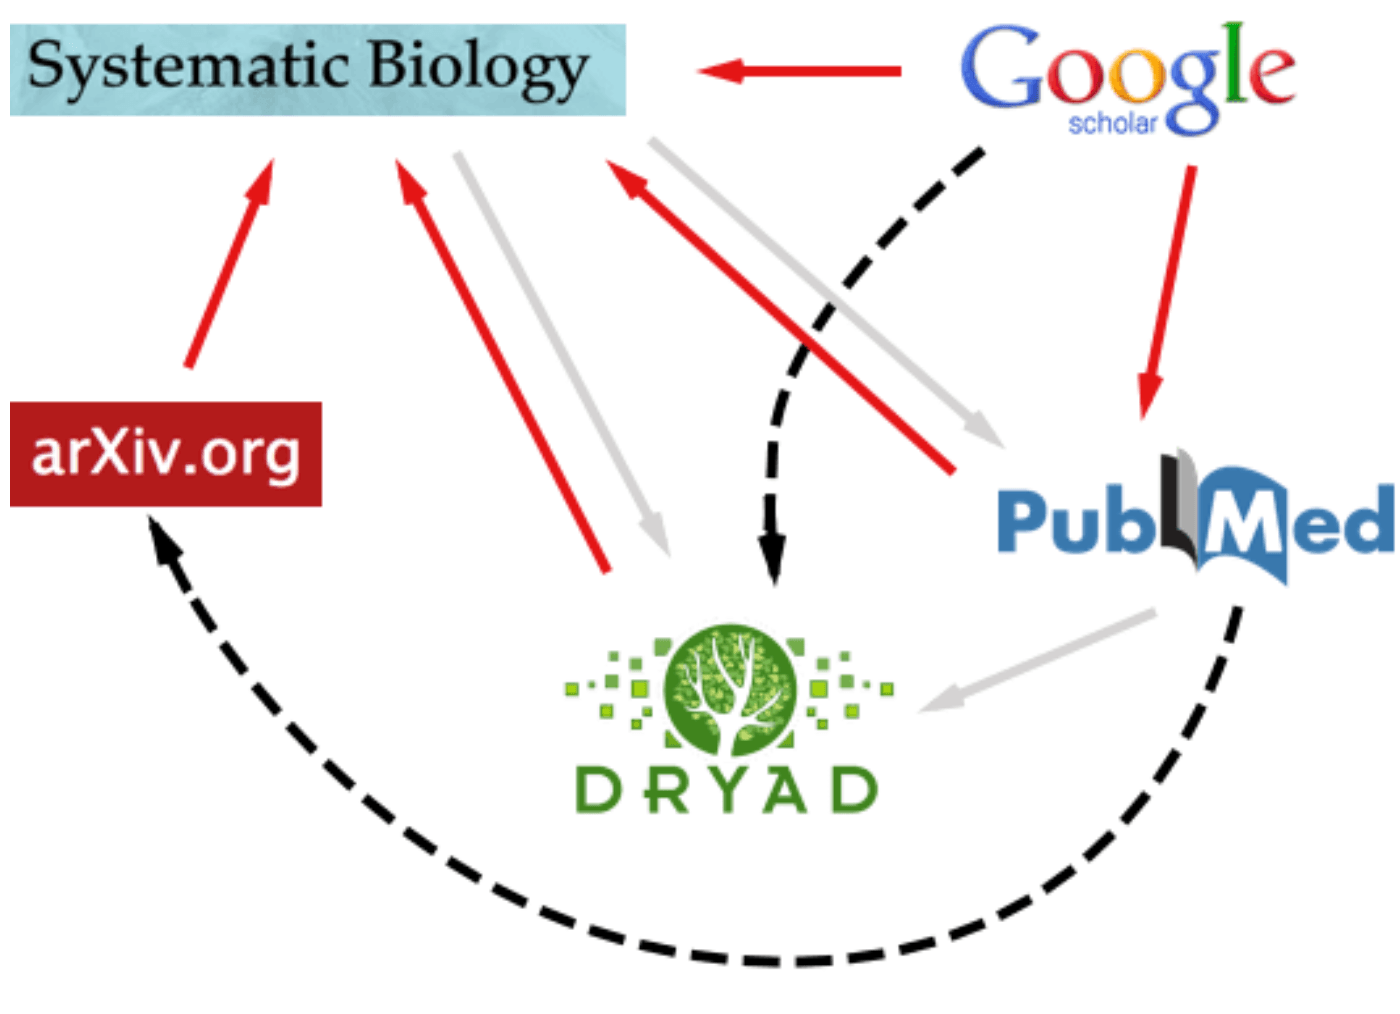 Linking between publishers and databases